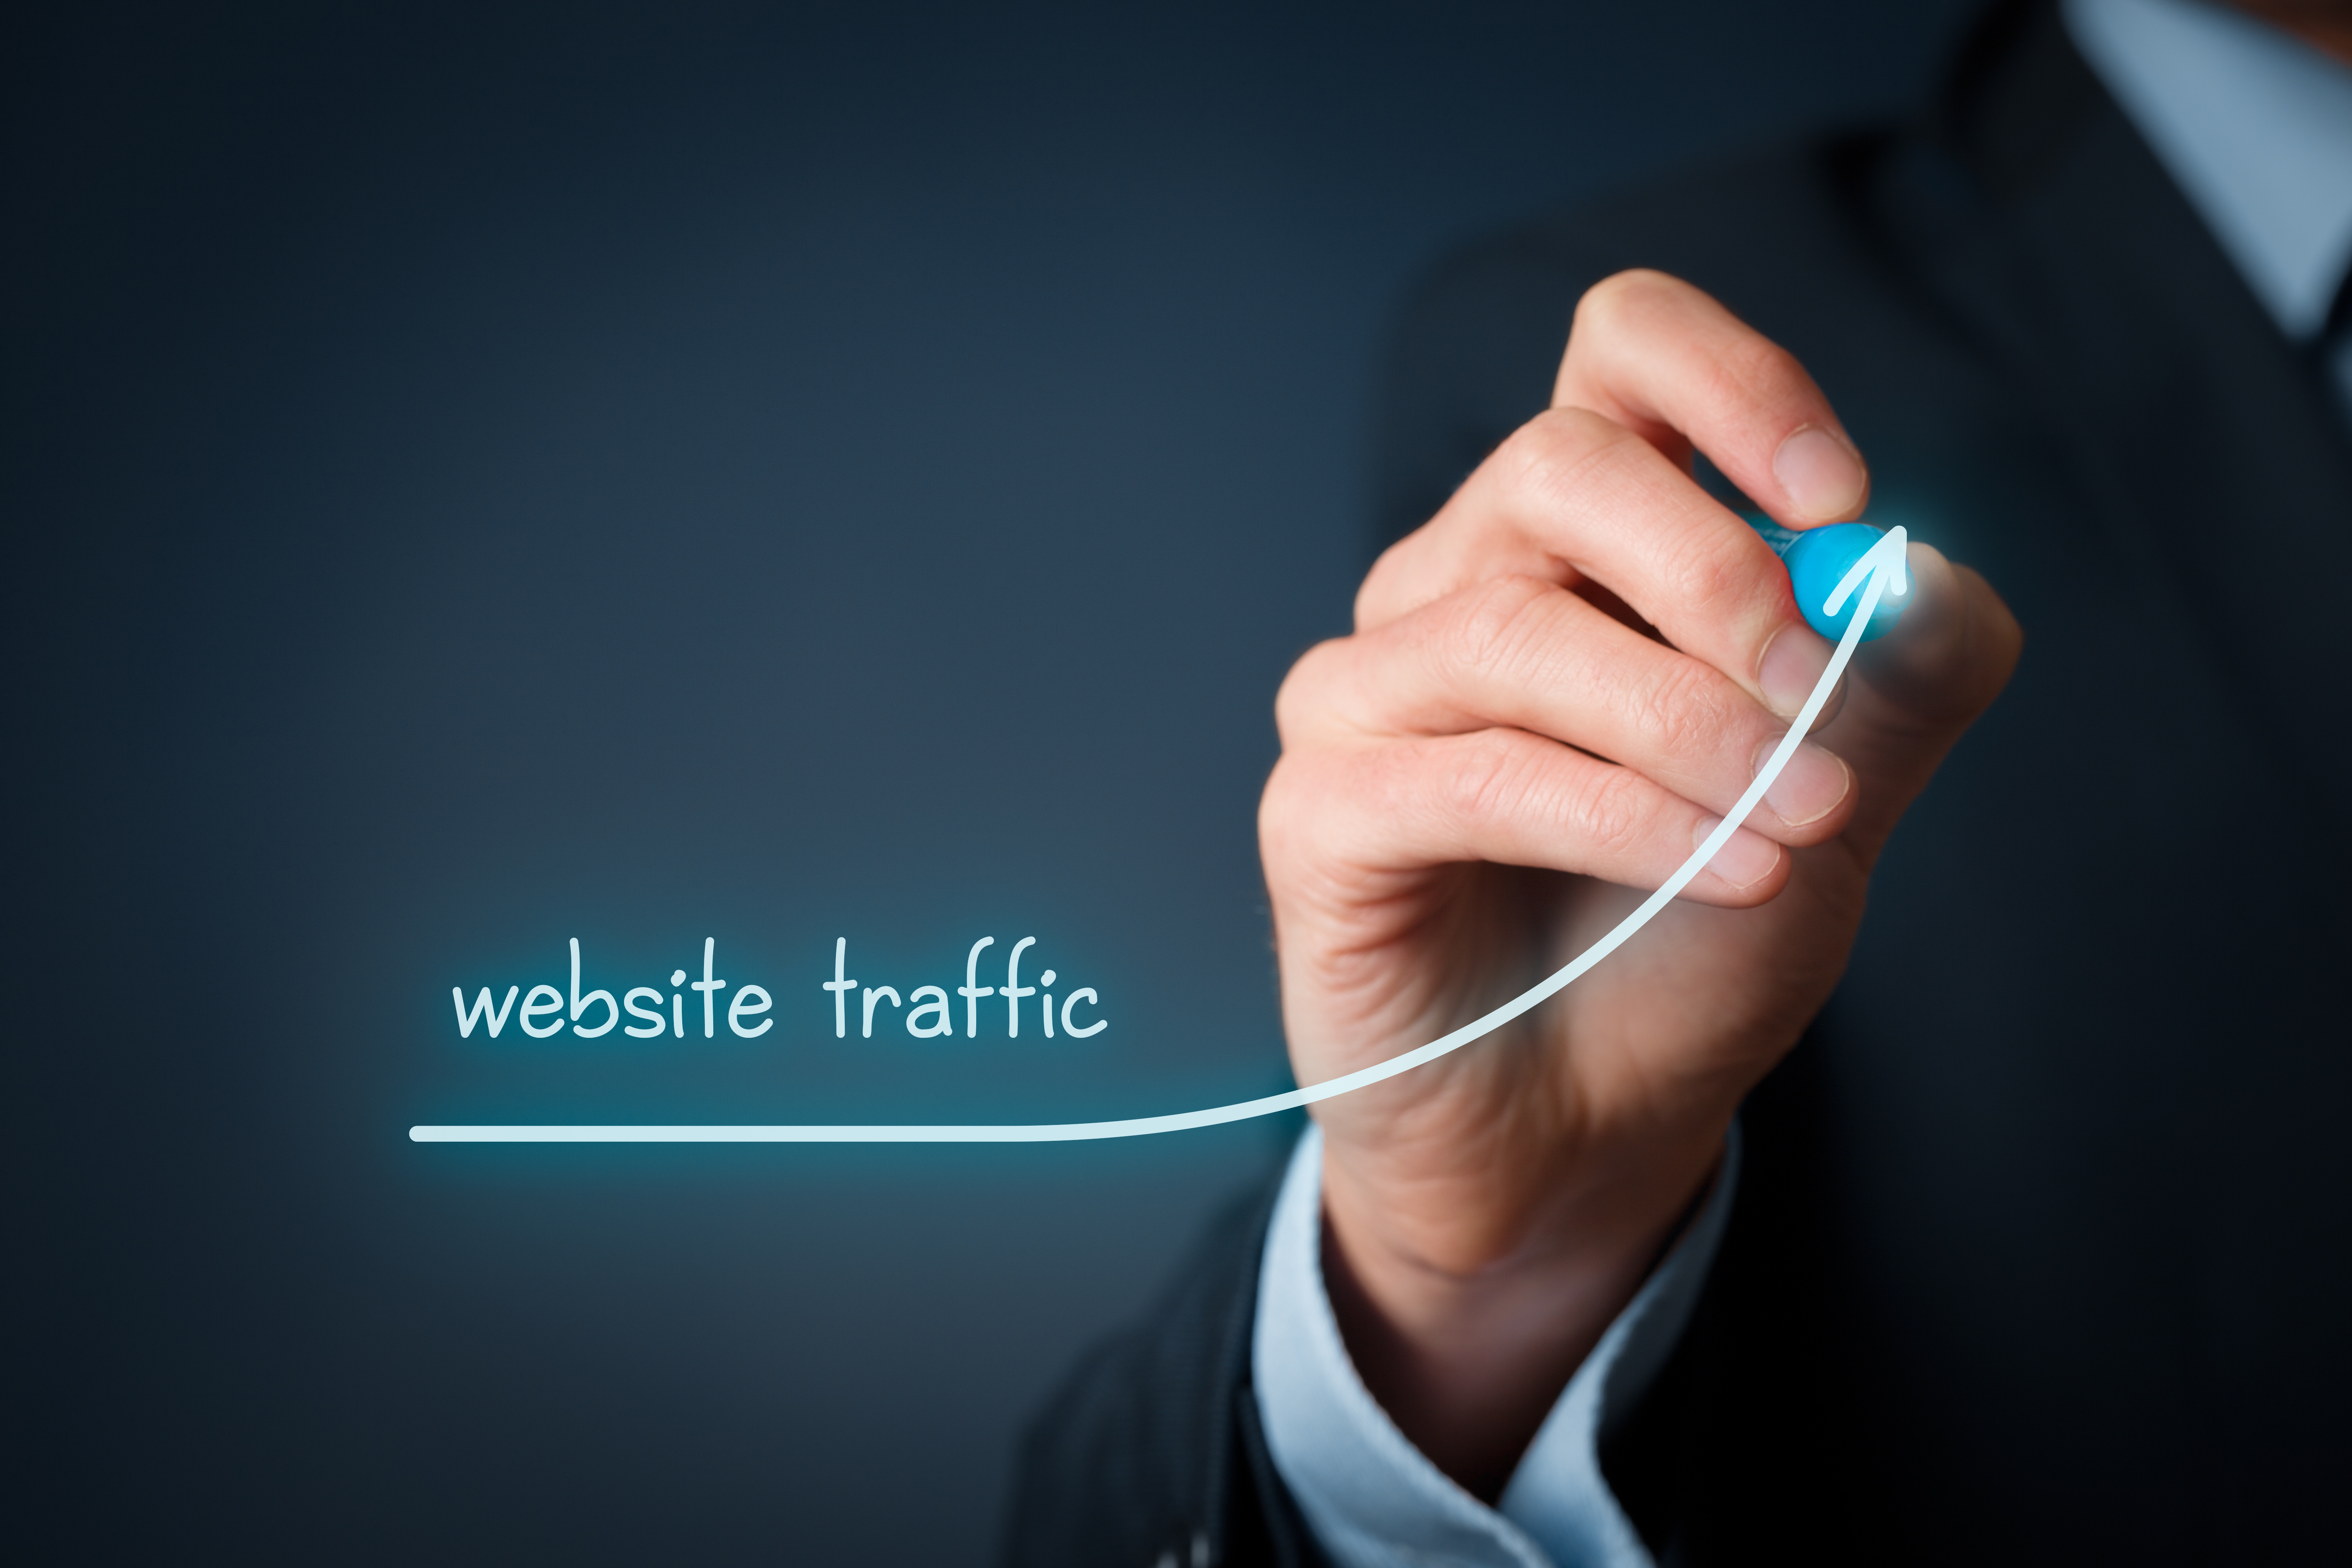 50 Easy Ways to Drive Traffic To Your Website